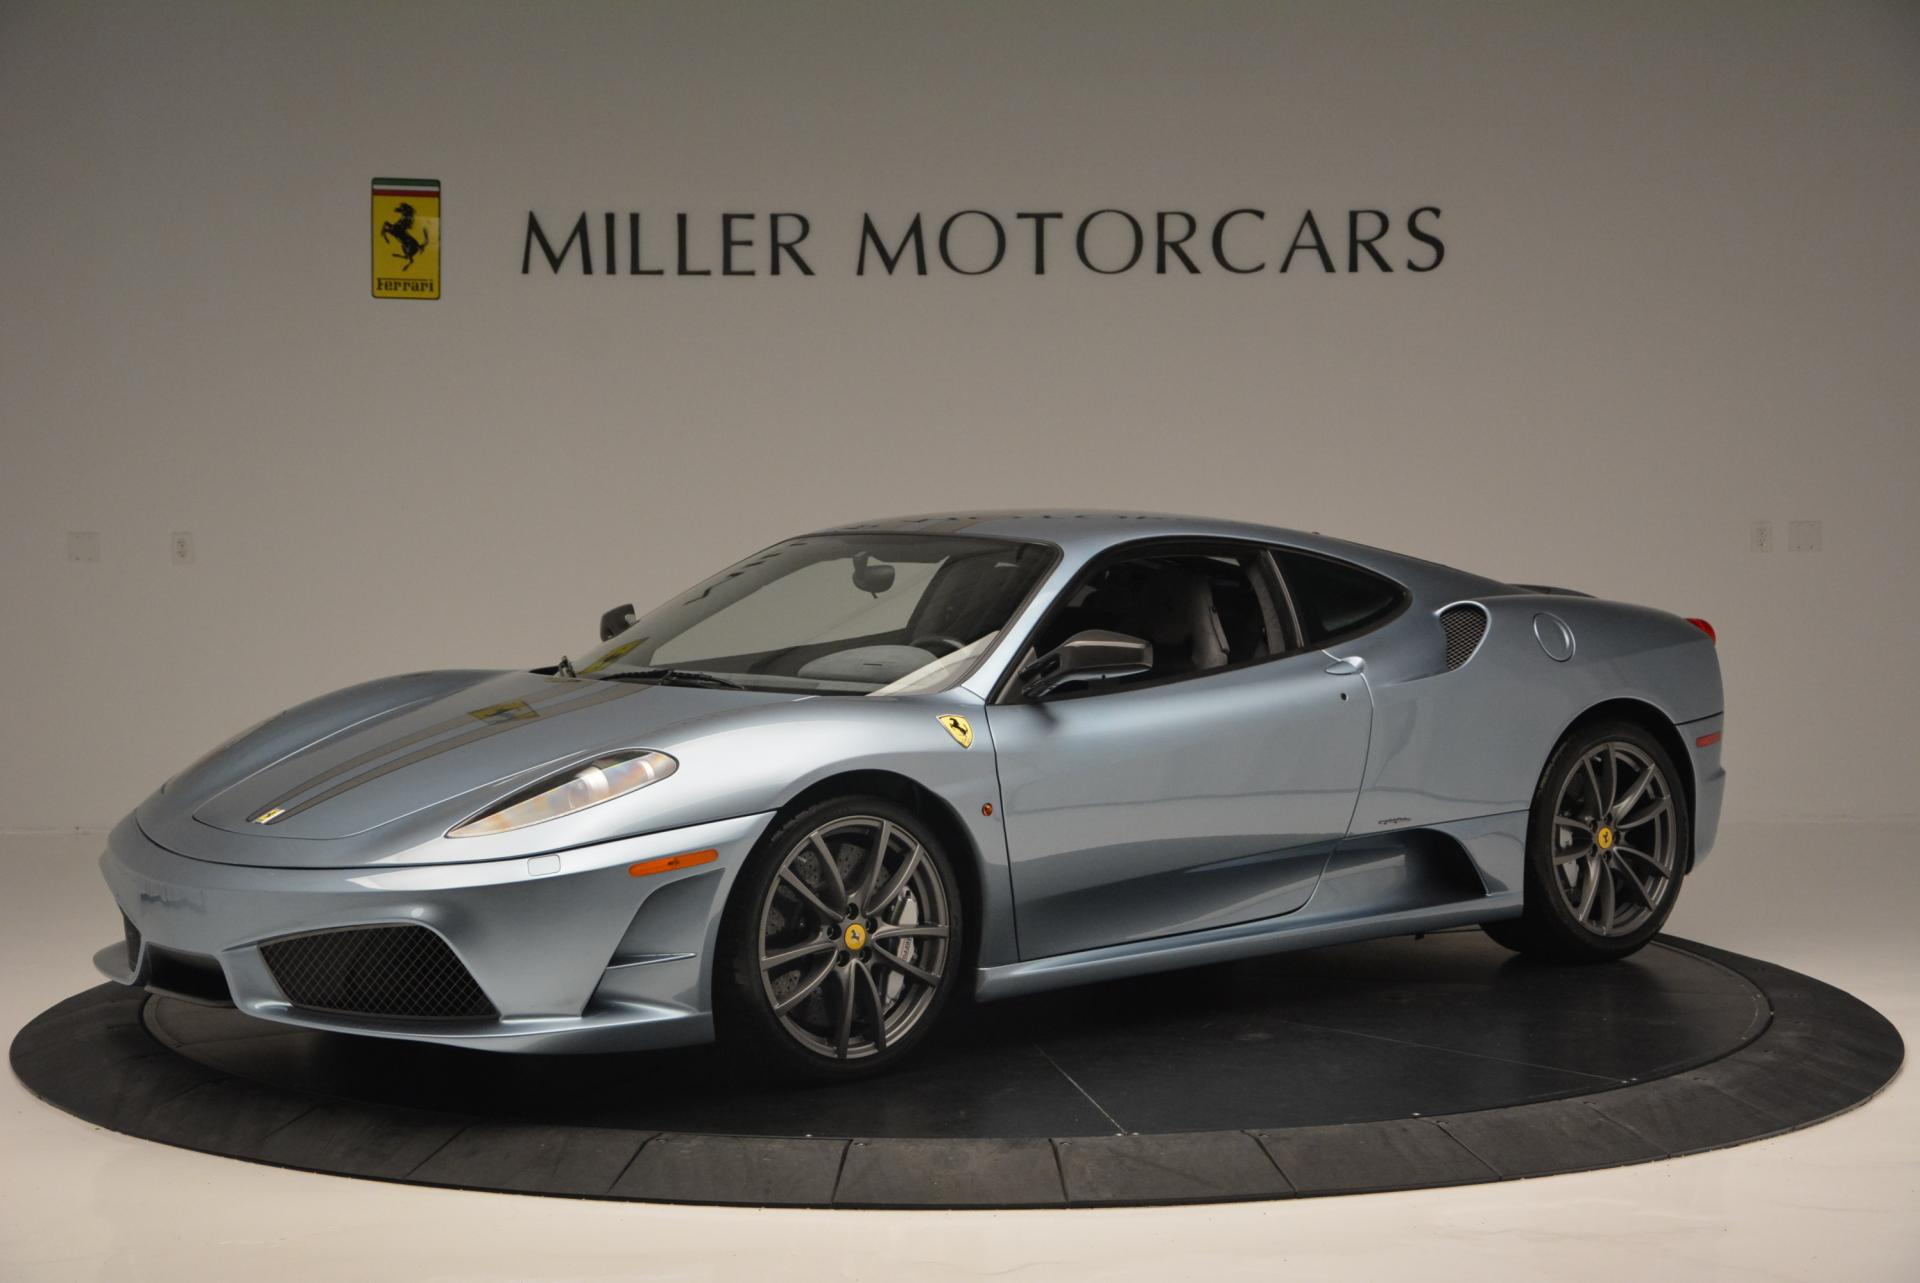 Used 2008 Ferrari F430 Scuderia For Sale In Greenwich, CT 146_p2